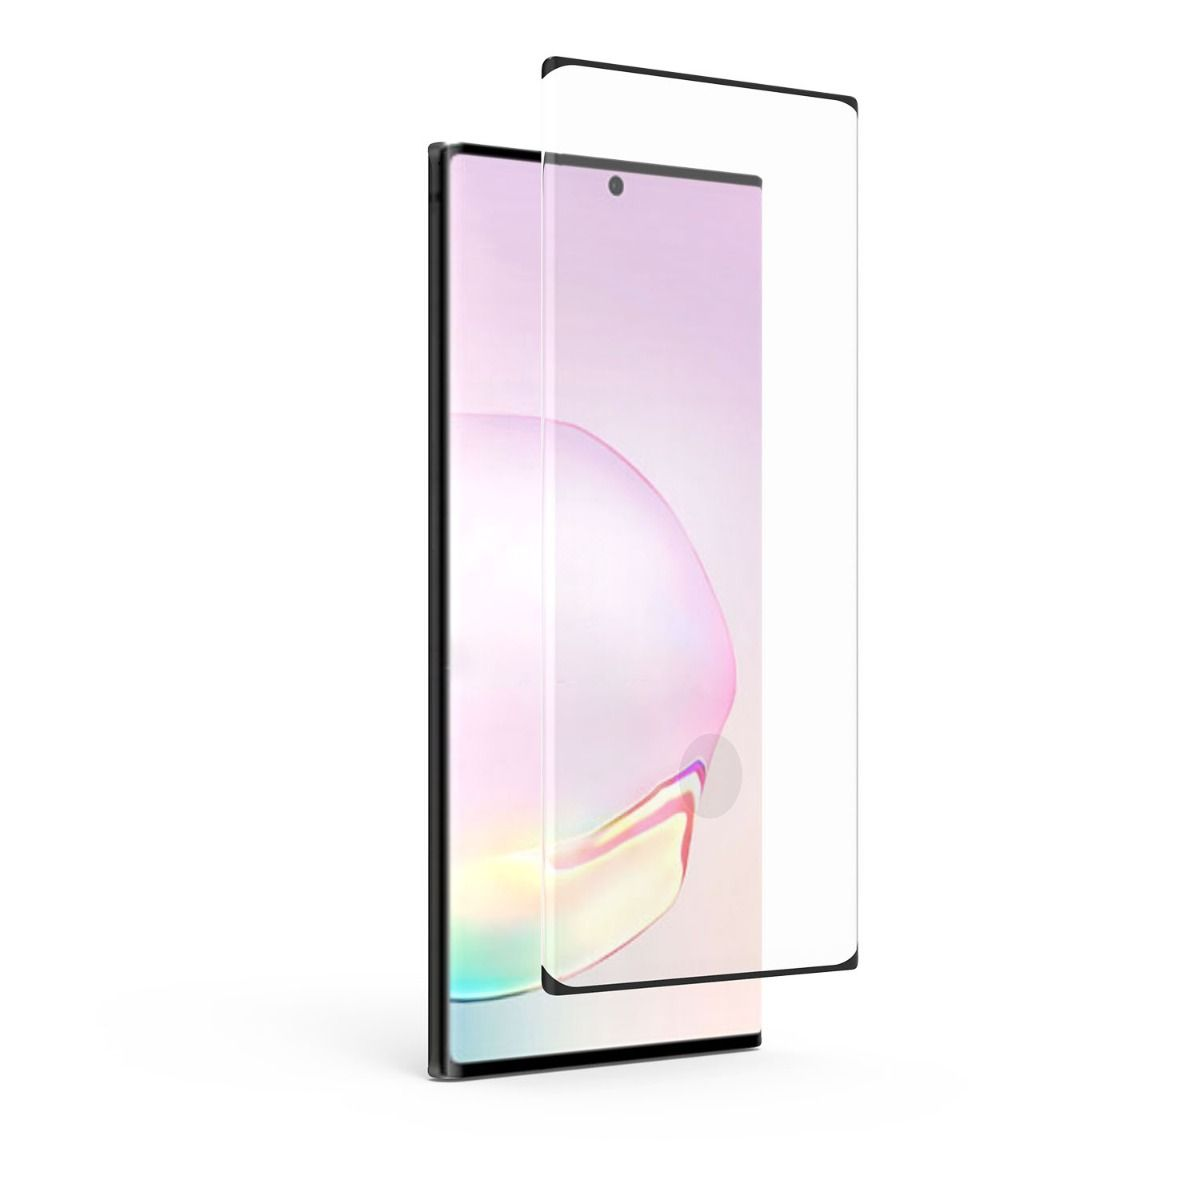 Samsung Galaxy Note20 Ultra 5G Steel 360 Antimicrobial Tempered Glass Fingerprint Sensor Ready Screen Protector with Black Borders, Alignment Tray and Pure Pledge up to $100